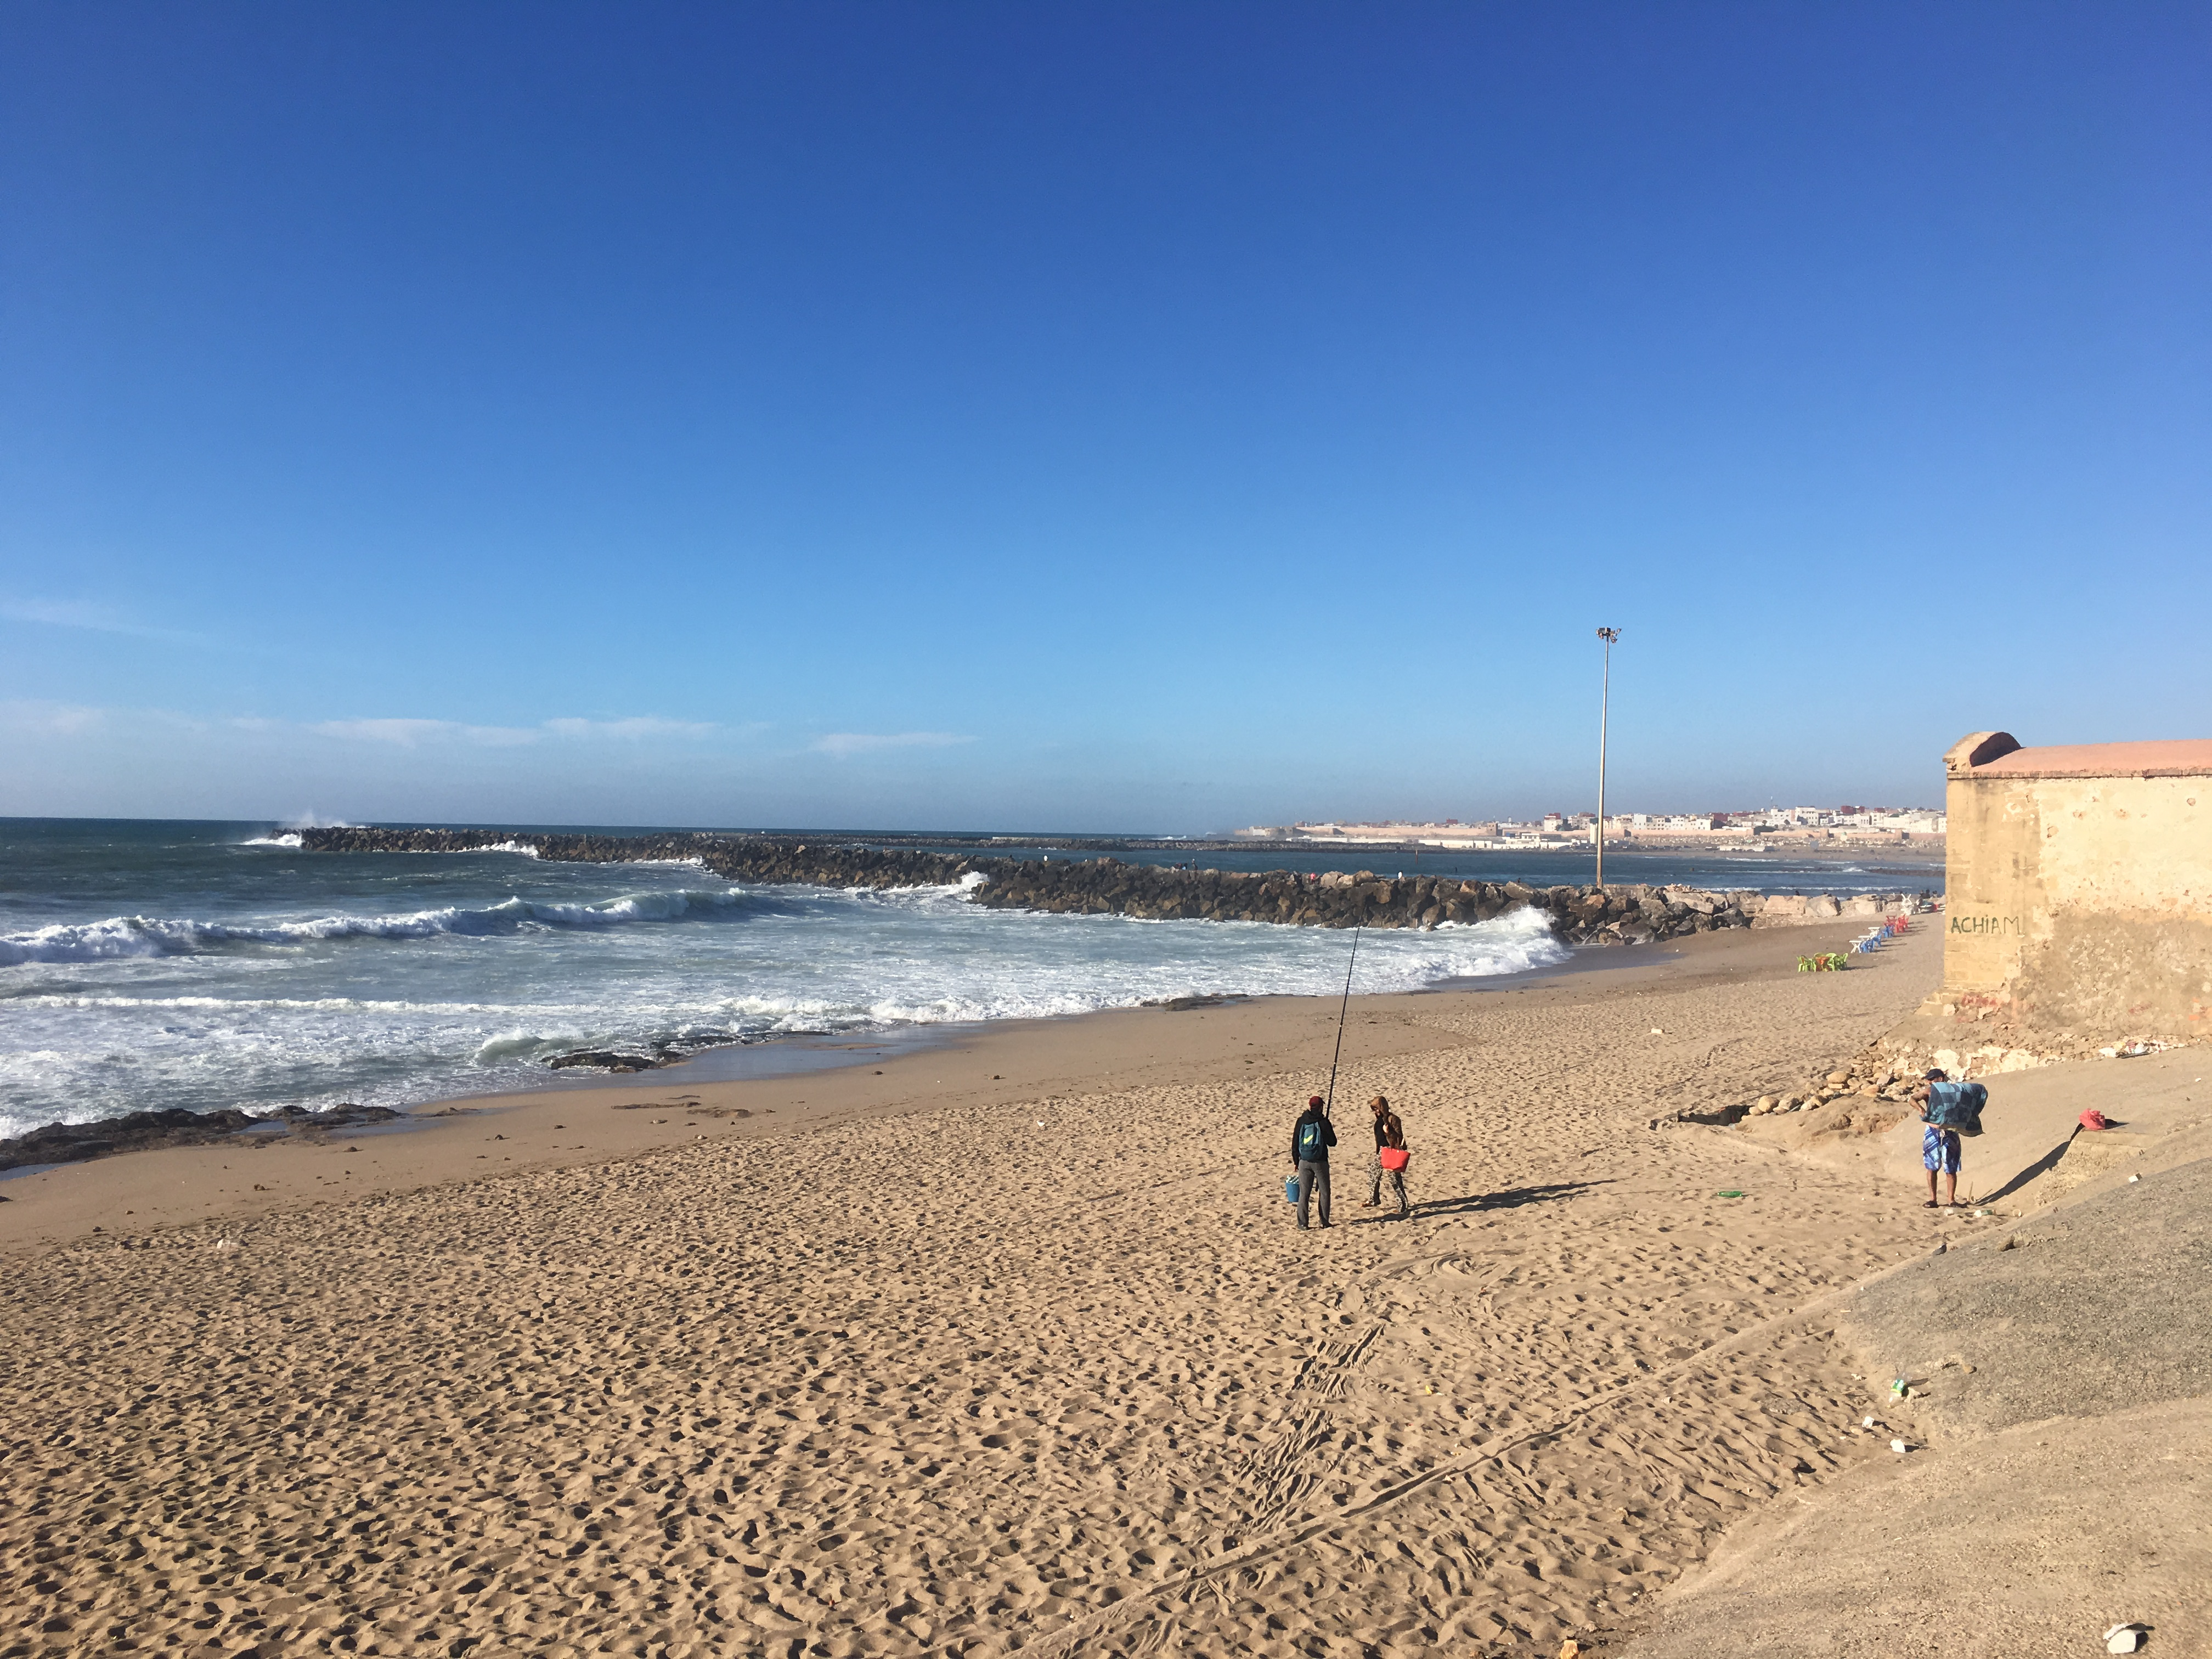 The Rabat beach in a rare deserted moment